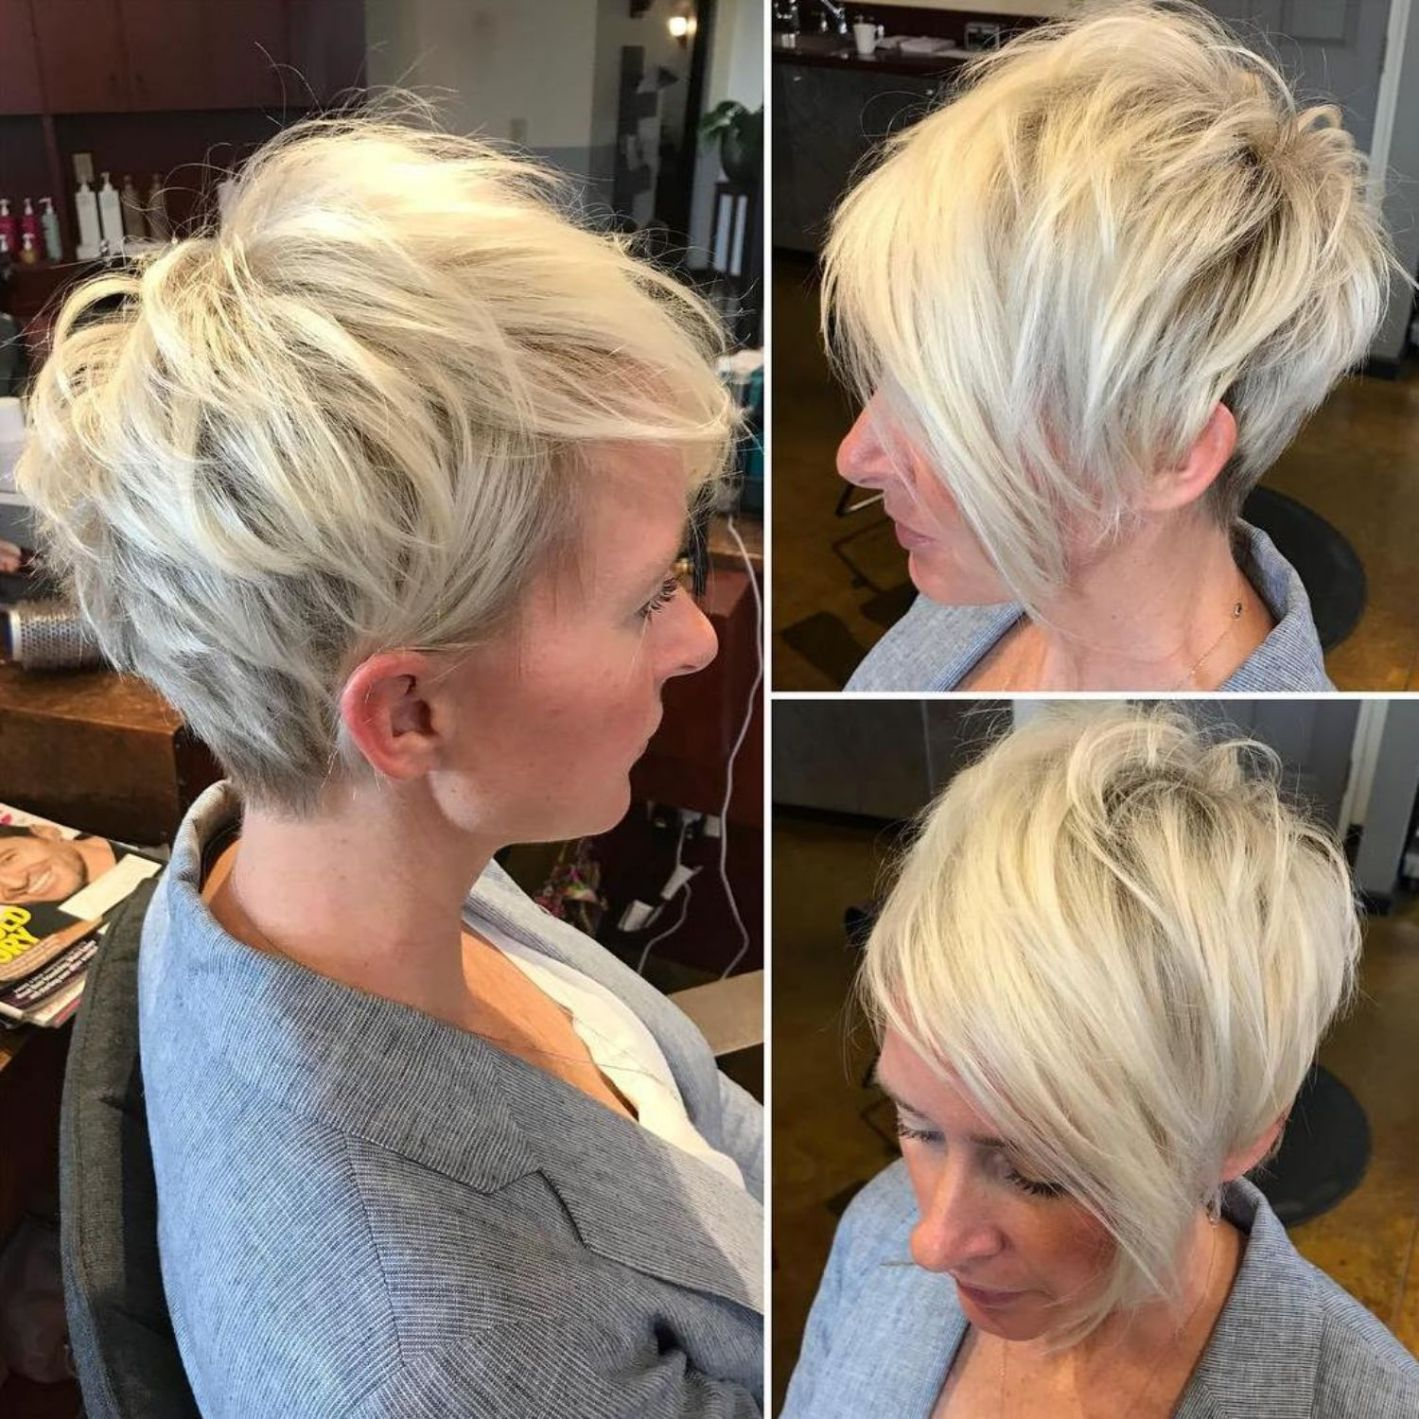 Pixie Haircuts With Bangs 50 Terrific Tapers Long Pixie Hairstyles Short Hair Styles Blonde Pixie